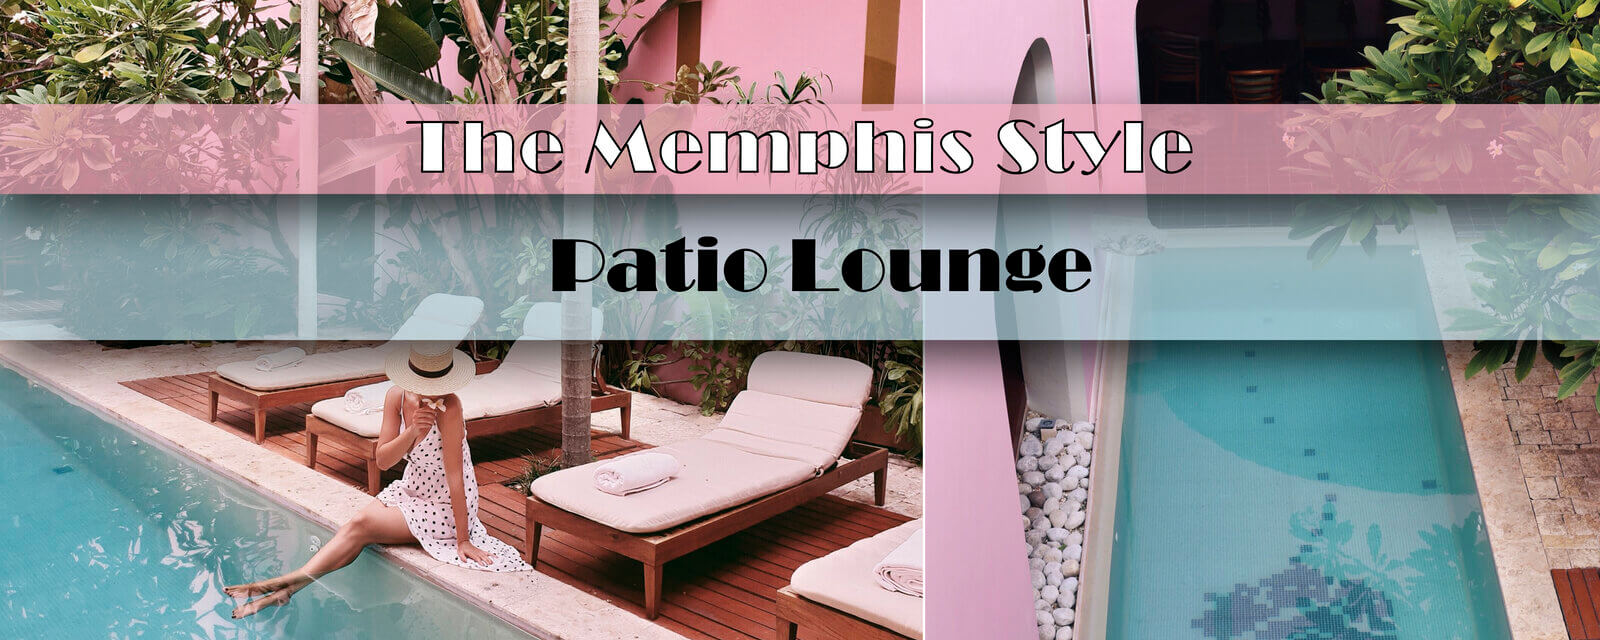 The Memphis Style | Patio Lounge